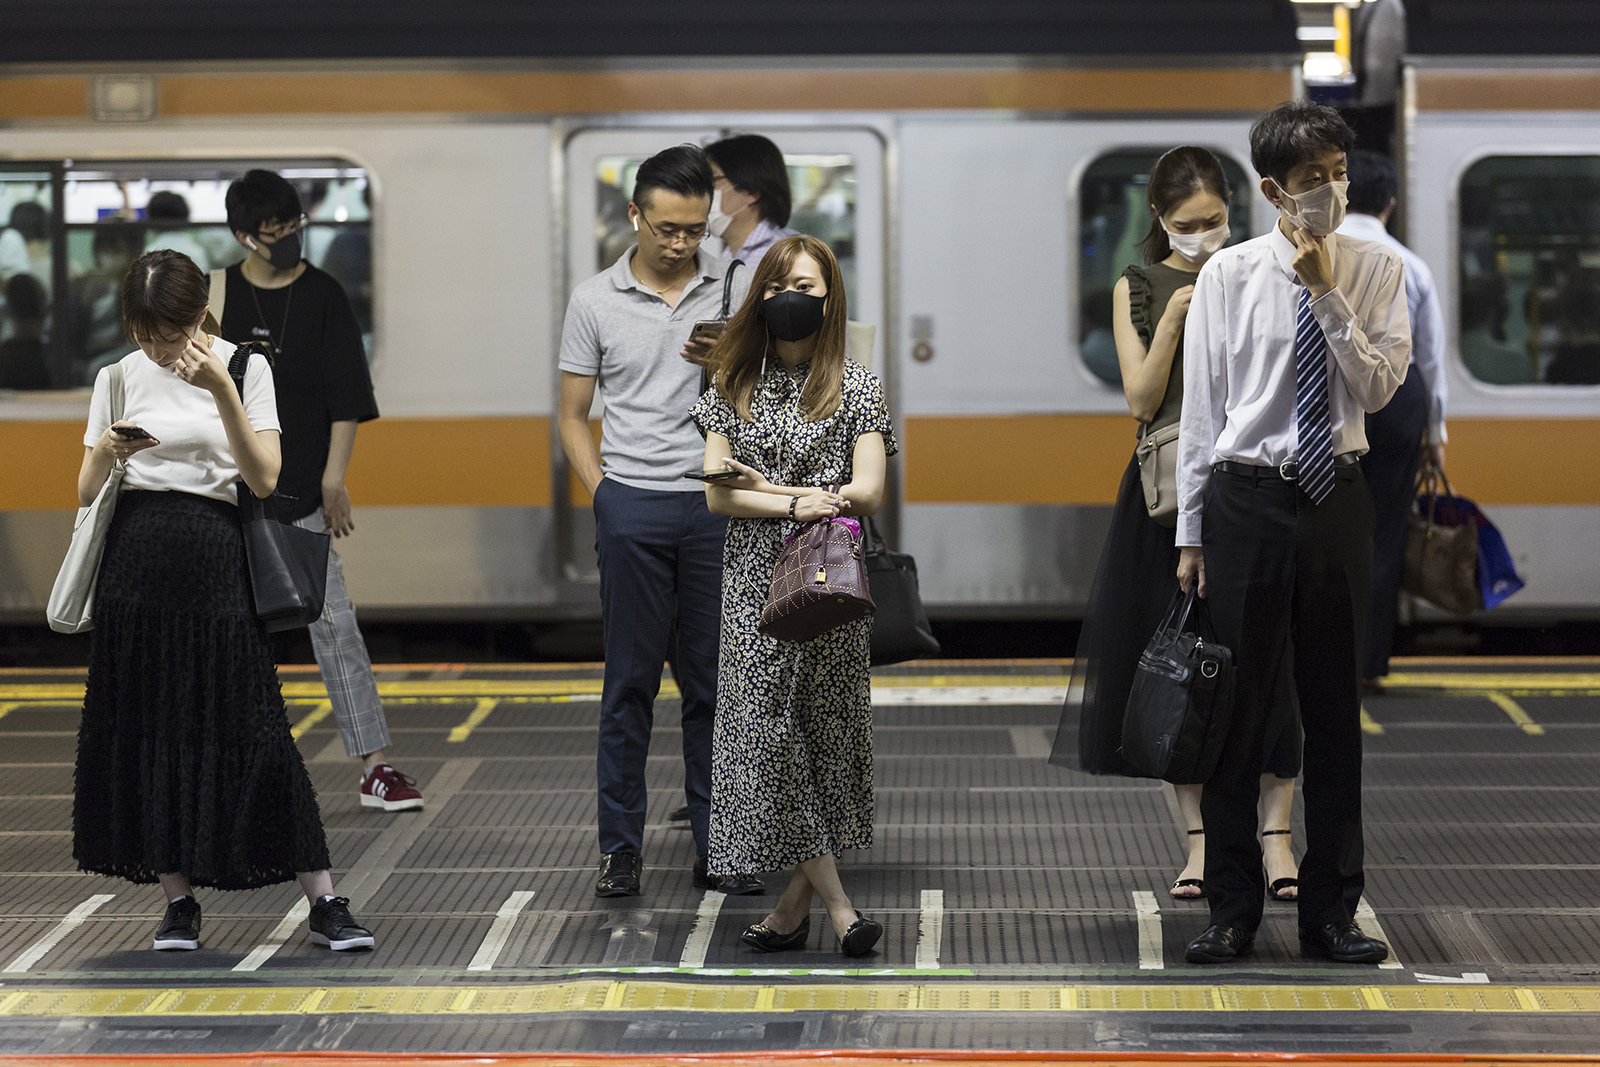 People wait for a train at Shinjuku station on August 4 in Tokyo.